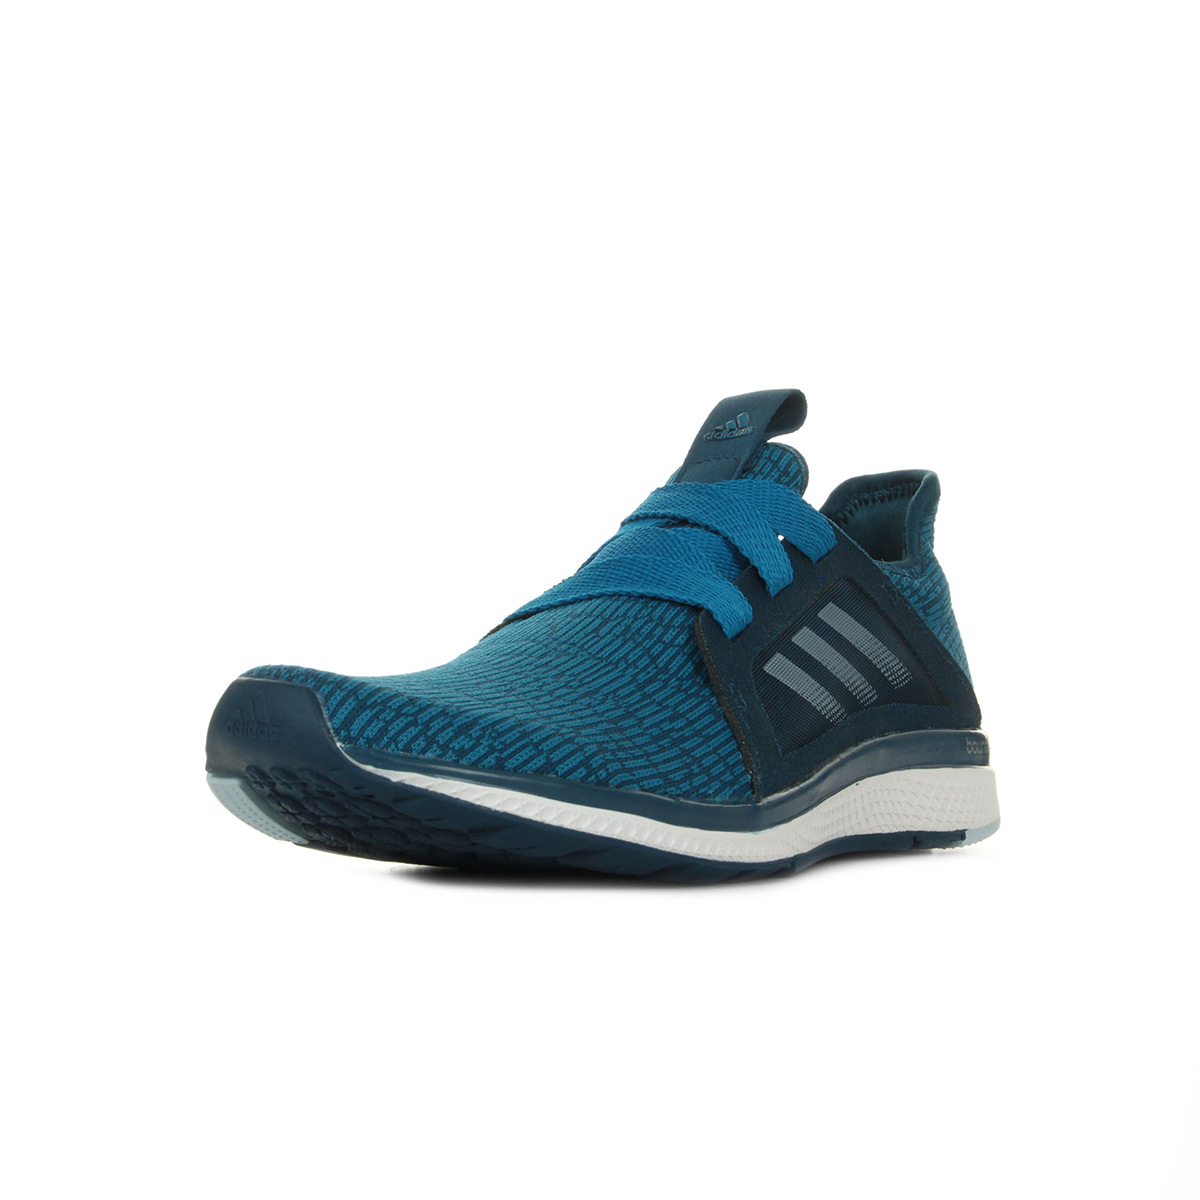 low priced f5cd1 f8e9a adidas Edge Lux W ...